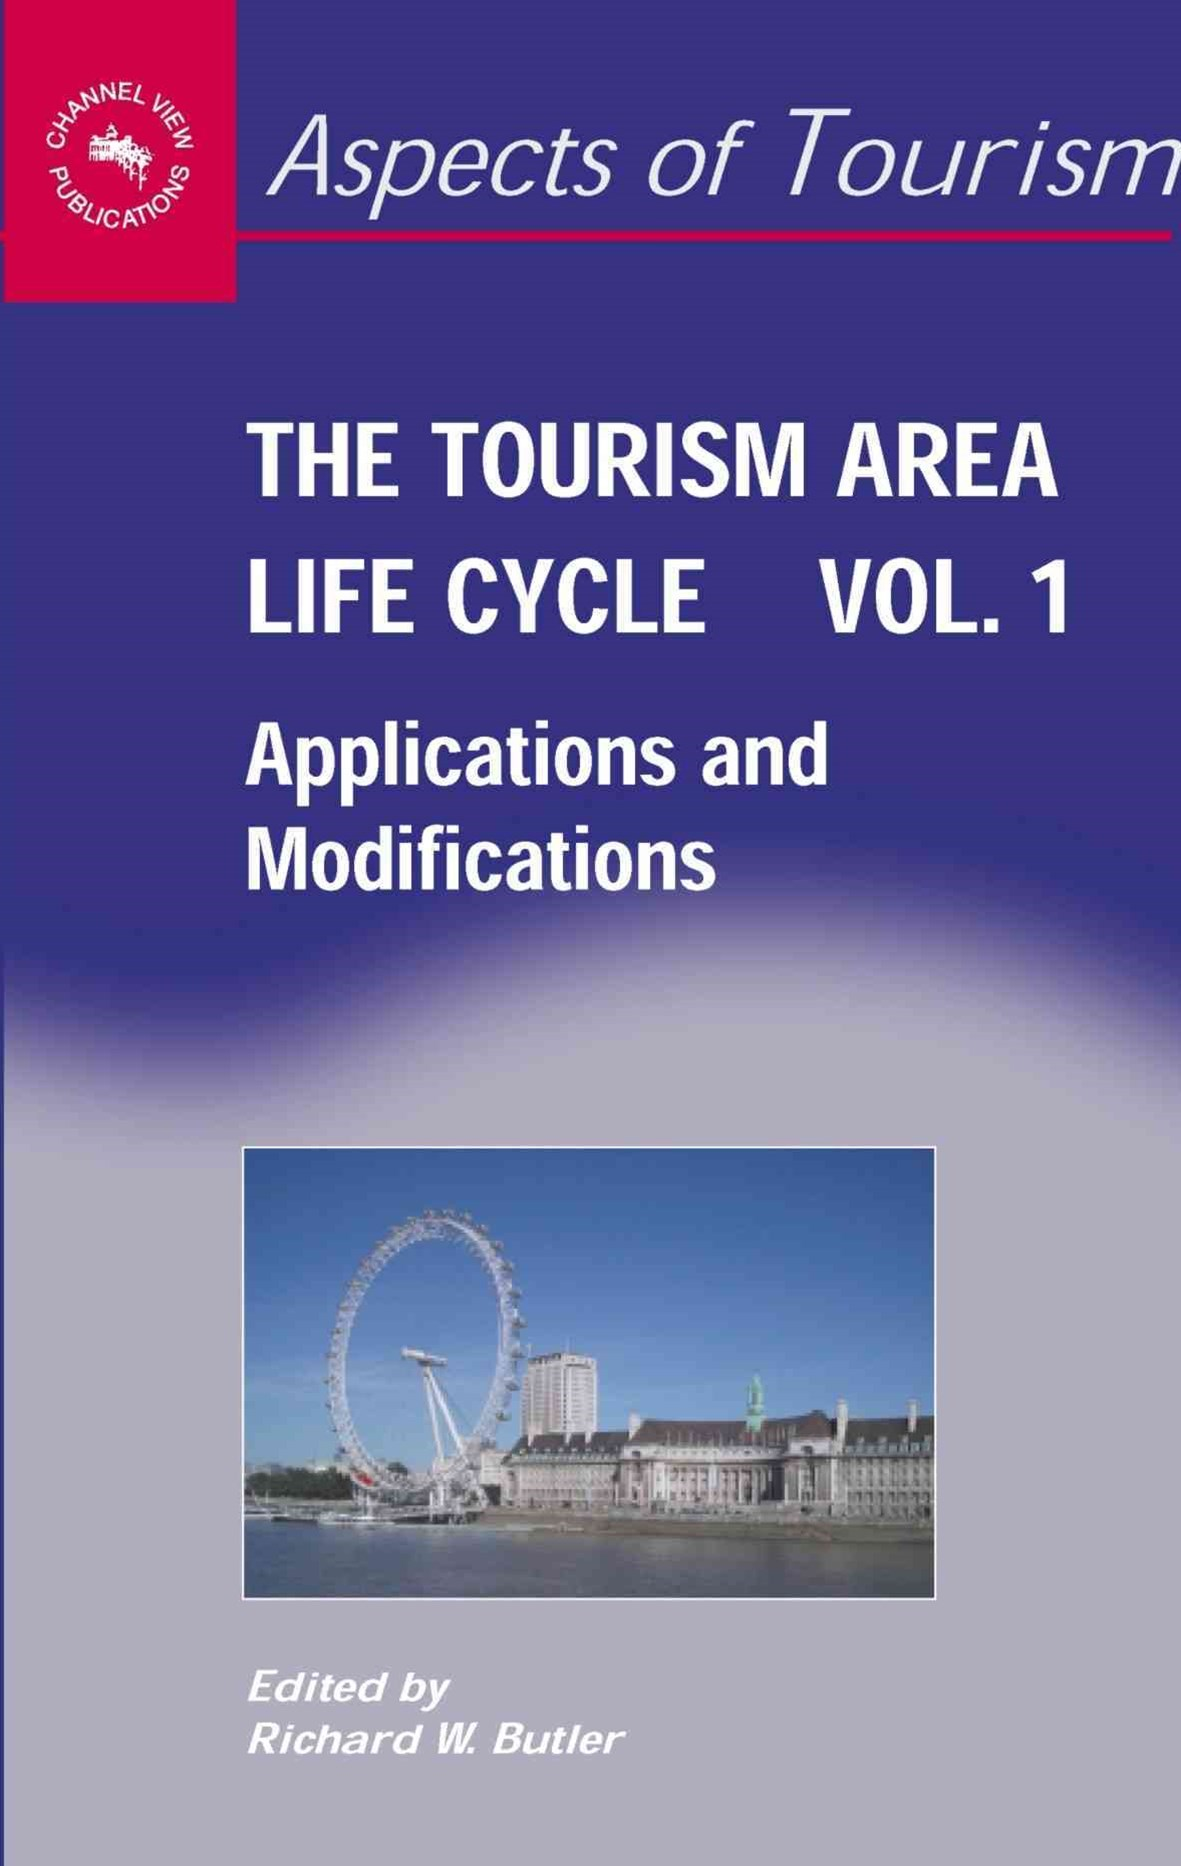 The Tourism Area Life Cycle